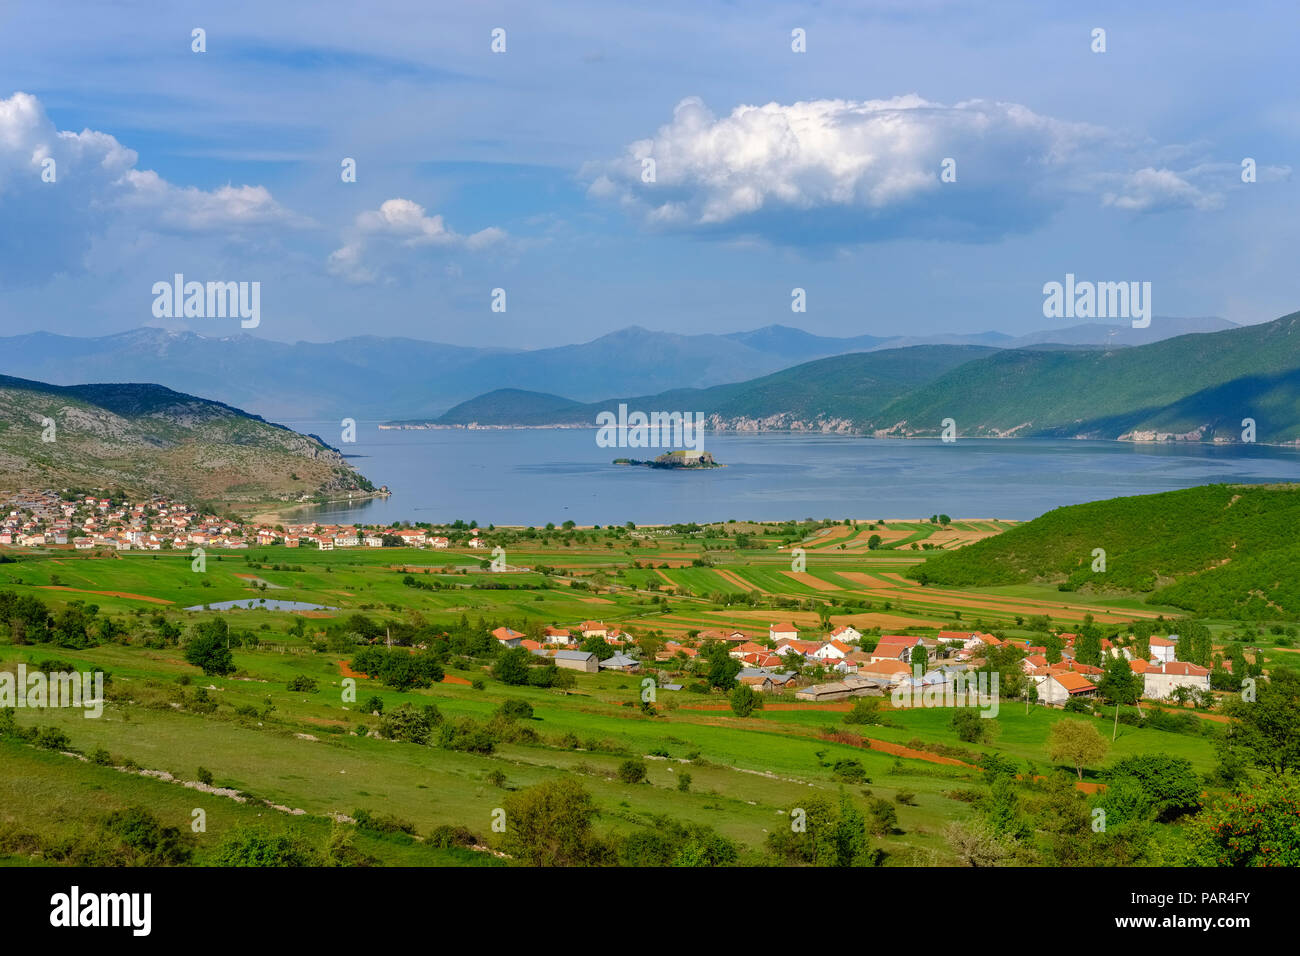 Albania, Prespa National Park, Lake Prespa with Maligrad Island and villages Lejthize and Liqenas, Greece and Macedonia in the background - Stock Image